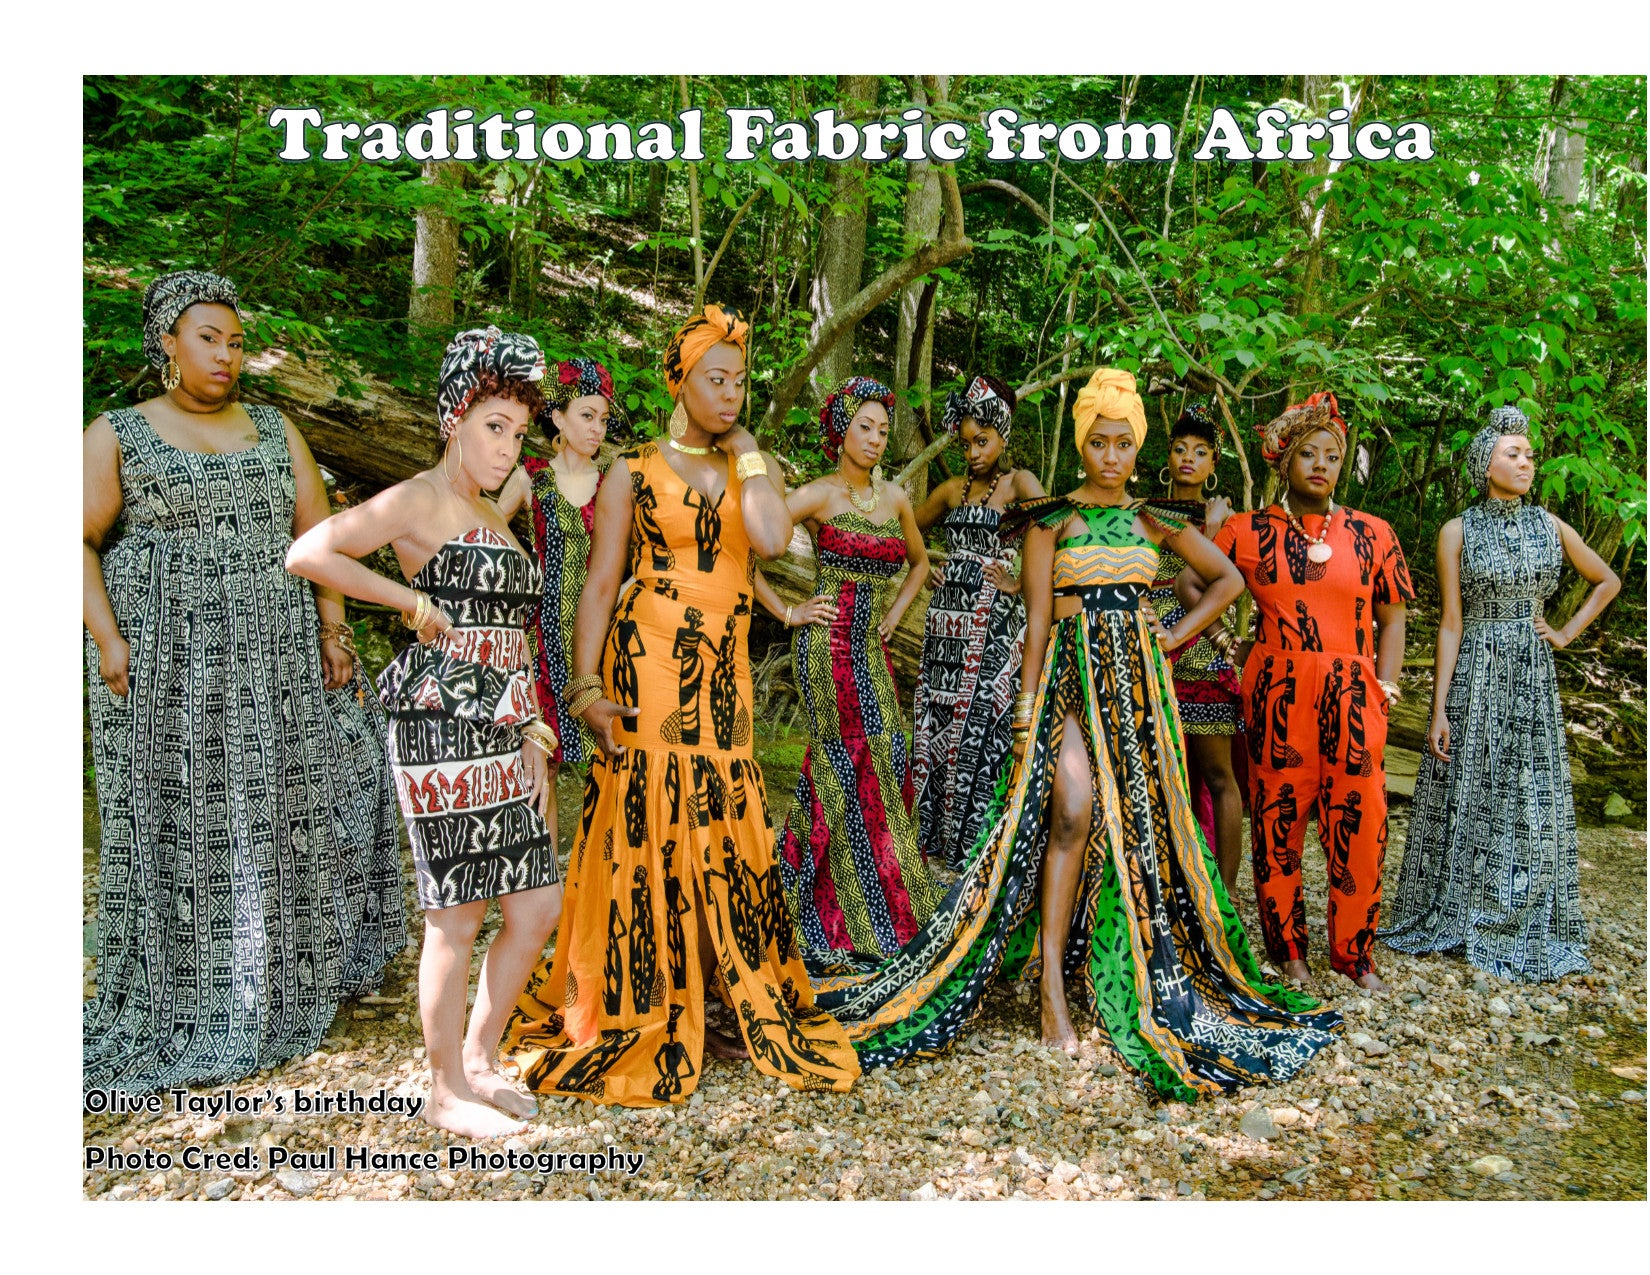 TRIBAL FABRIC FROM AFRICA